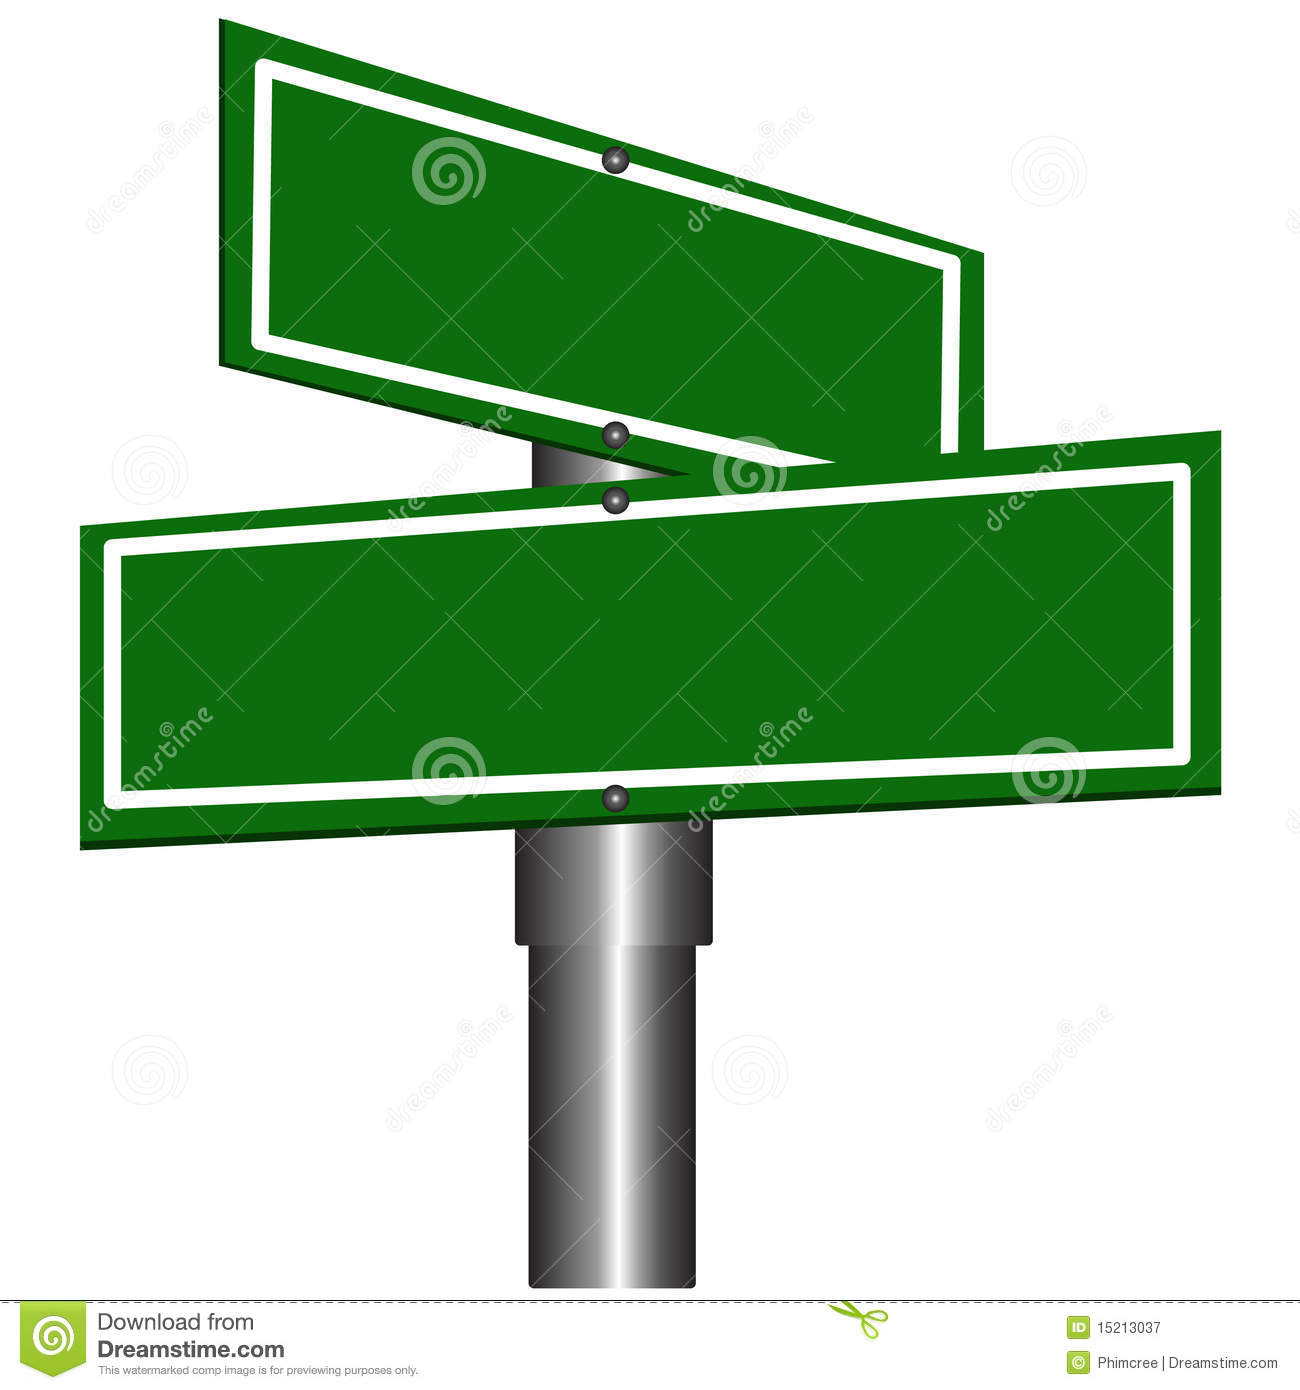 clipart signs at getdrawings com free for personal use clipart rh getdrawings com street sign clip art free street sign clipart black and white